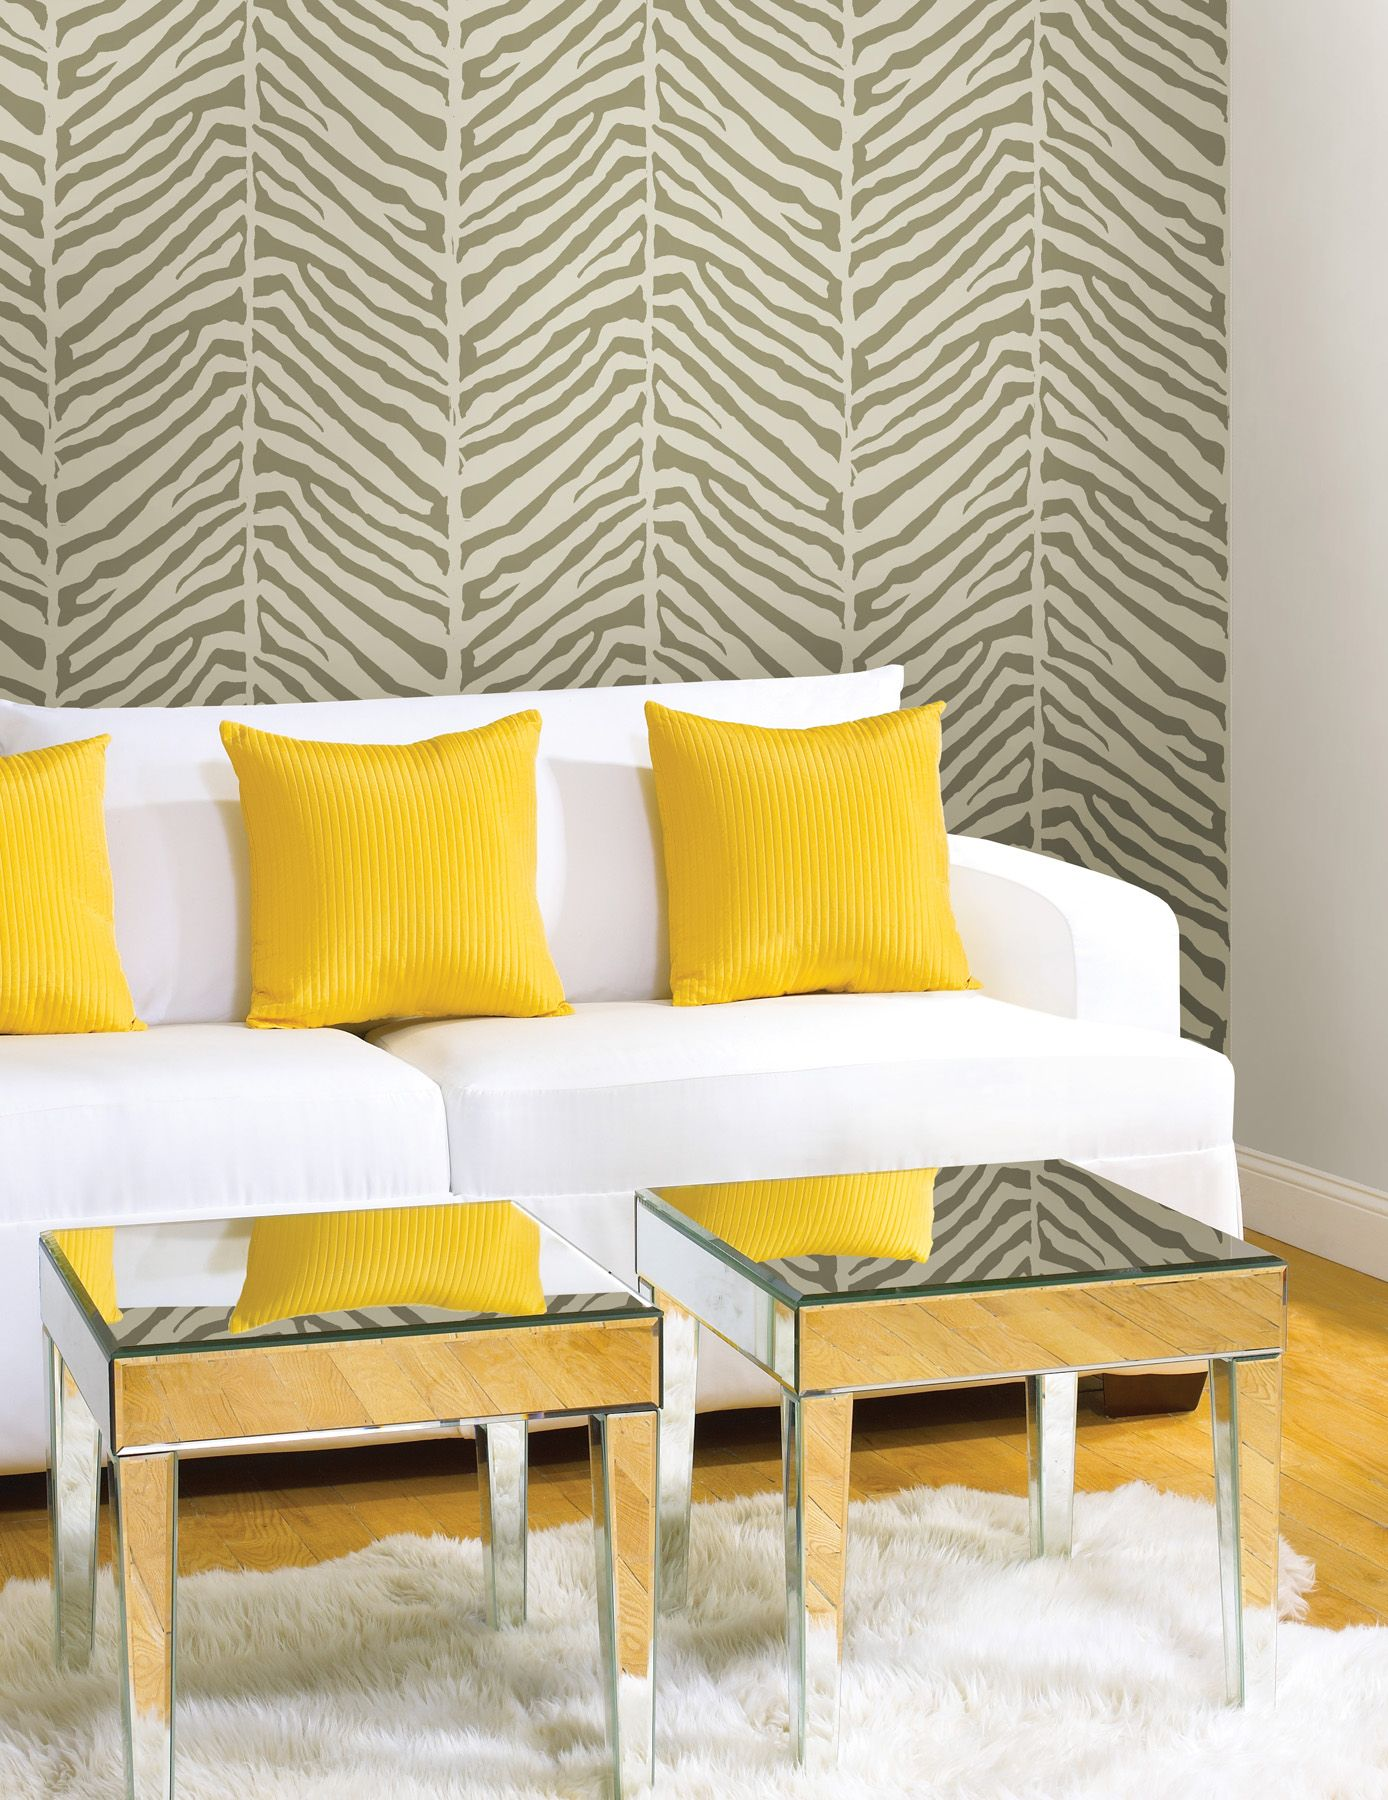 Zebra print wallpaper feature wall